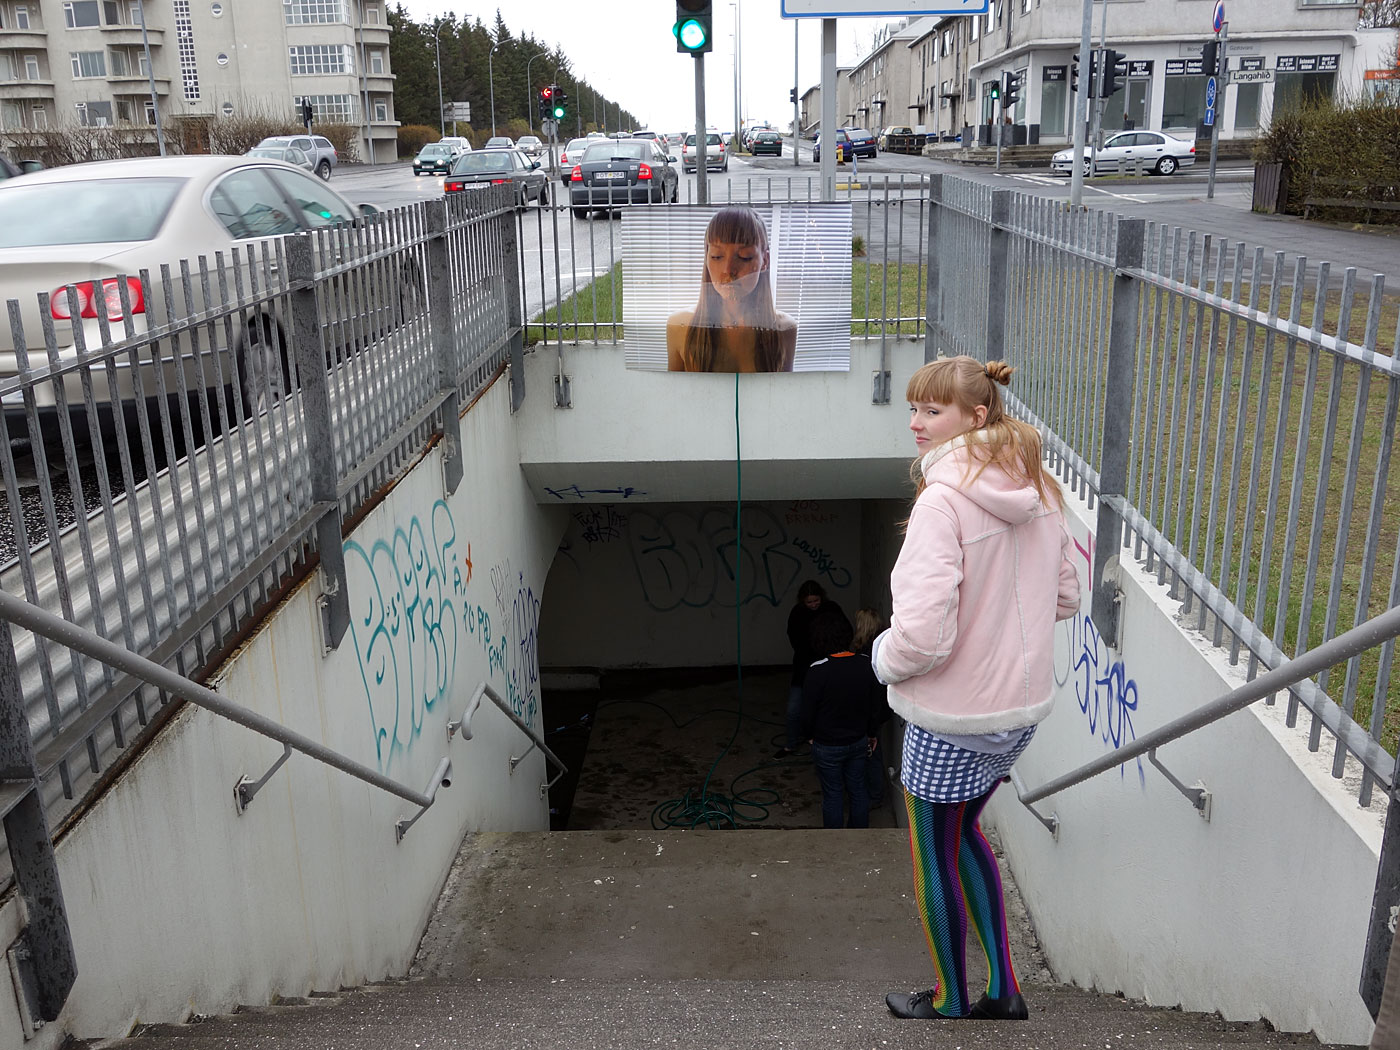 Reykjav&iacute;k. 'Avant-gar&eth;ur 3' under a street. - The entrance to the underpass for pedestrians - or to the exhibition '<a href='https://www.facebook.com/events/142453915939739/' target='_blank' class='linksnormal'>Avant-gar&eth;ur 3</a>' by  Solveig Thoroddsen and Margr&eacute;t Sesseljud&oacute;ttir (right). It was standing for (just) 2 hours - from 4 pm until 6 pm under Miklabraut street. Gar&eth;ur = garden. (11 May 2013)